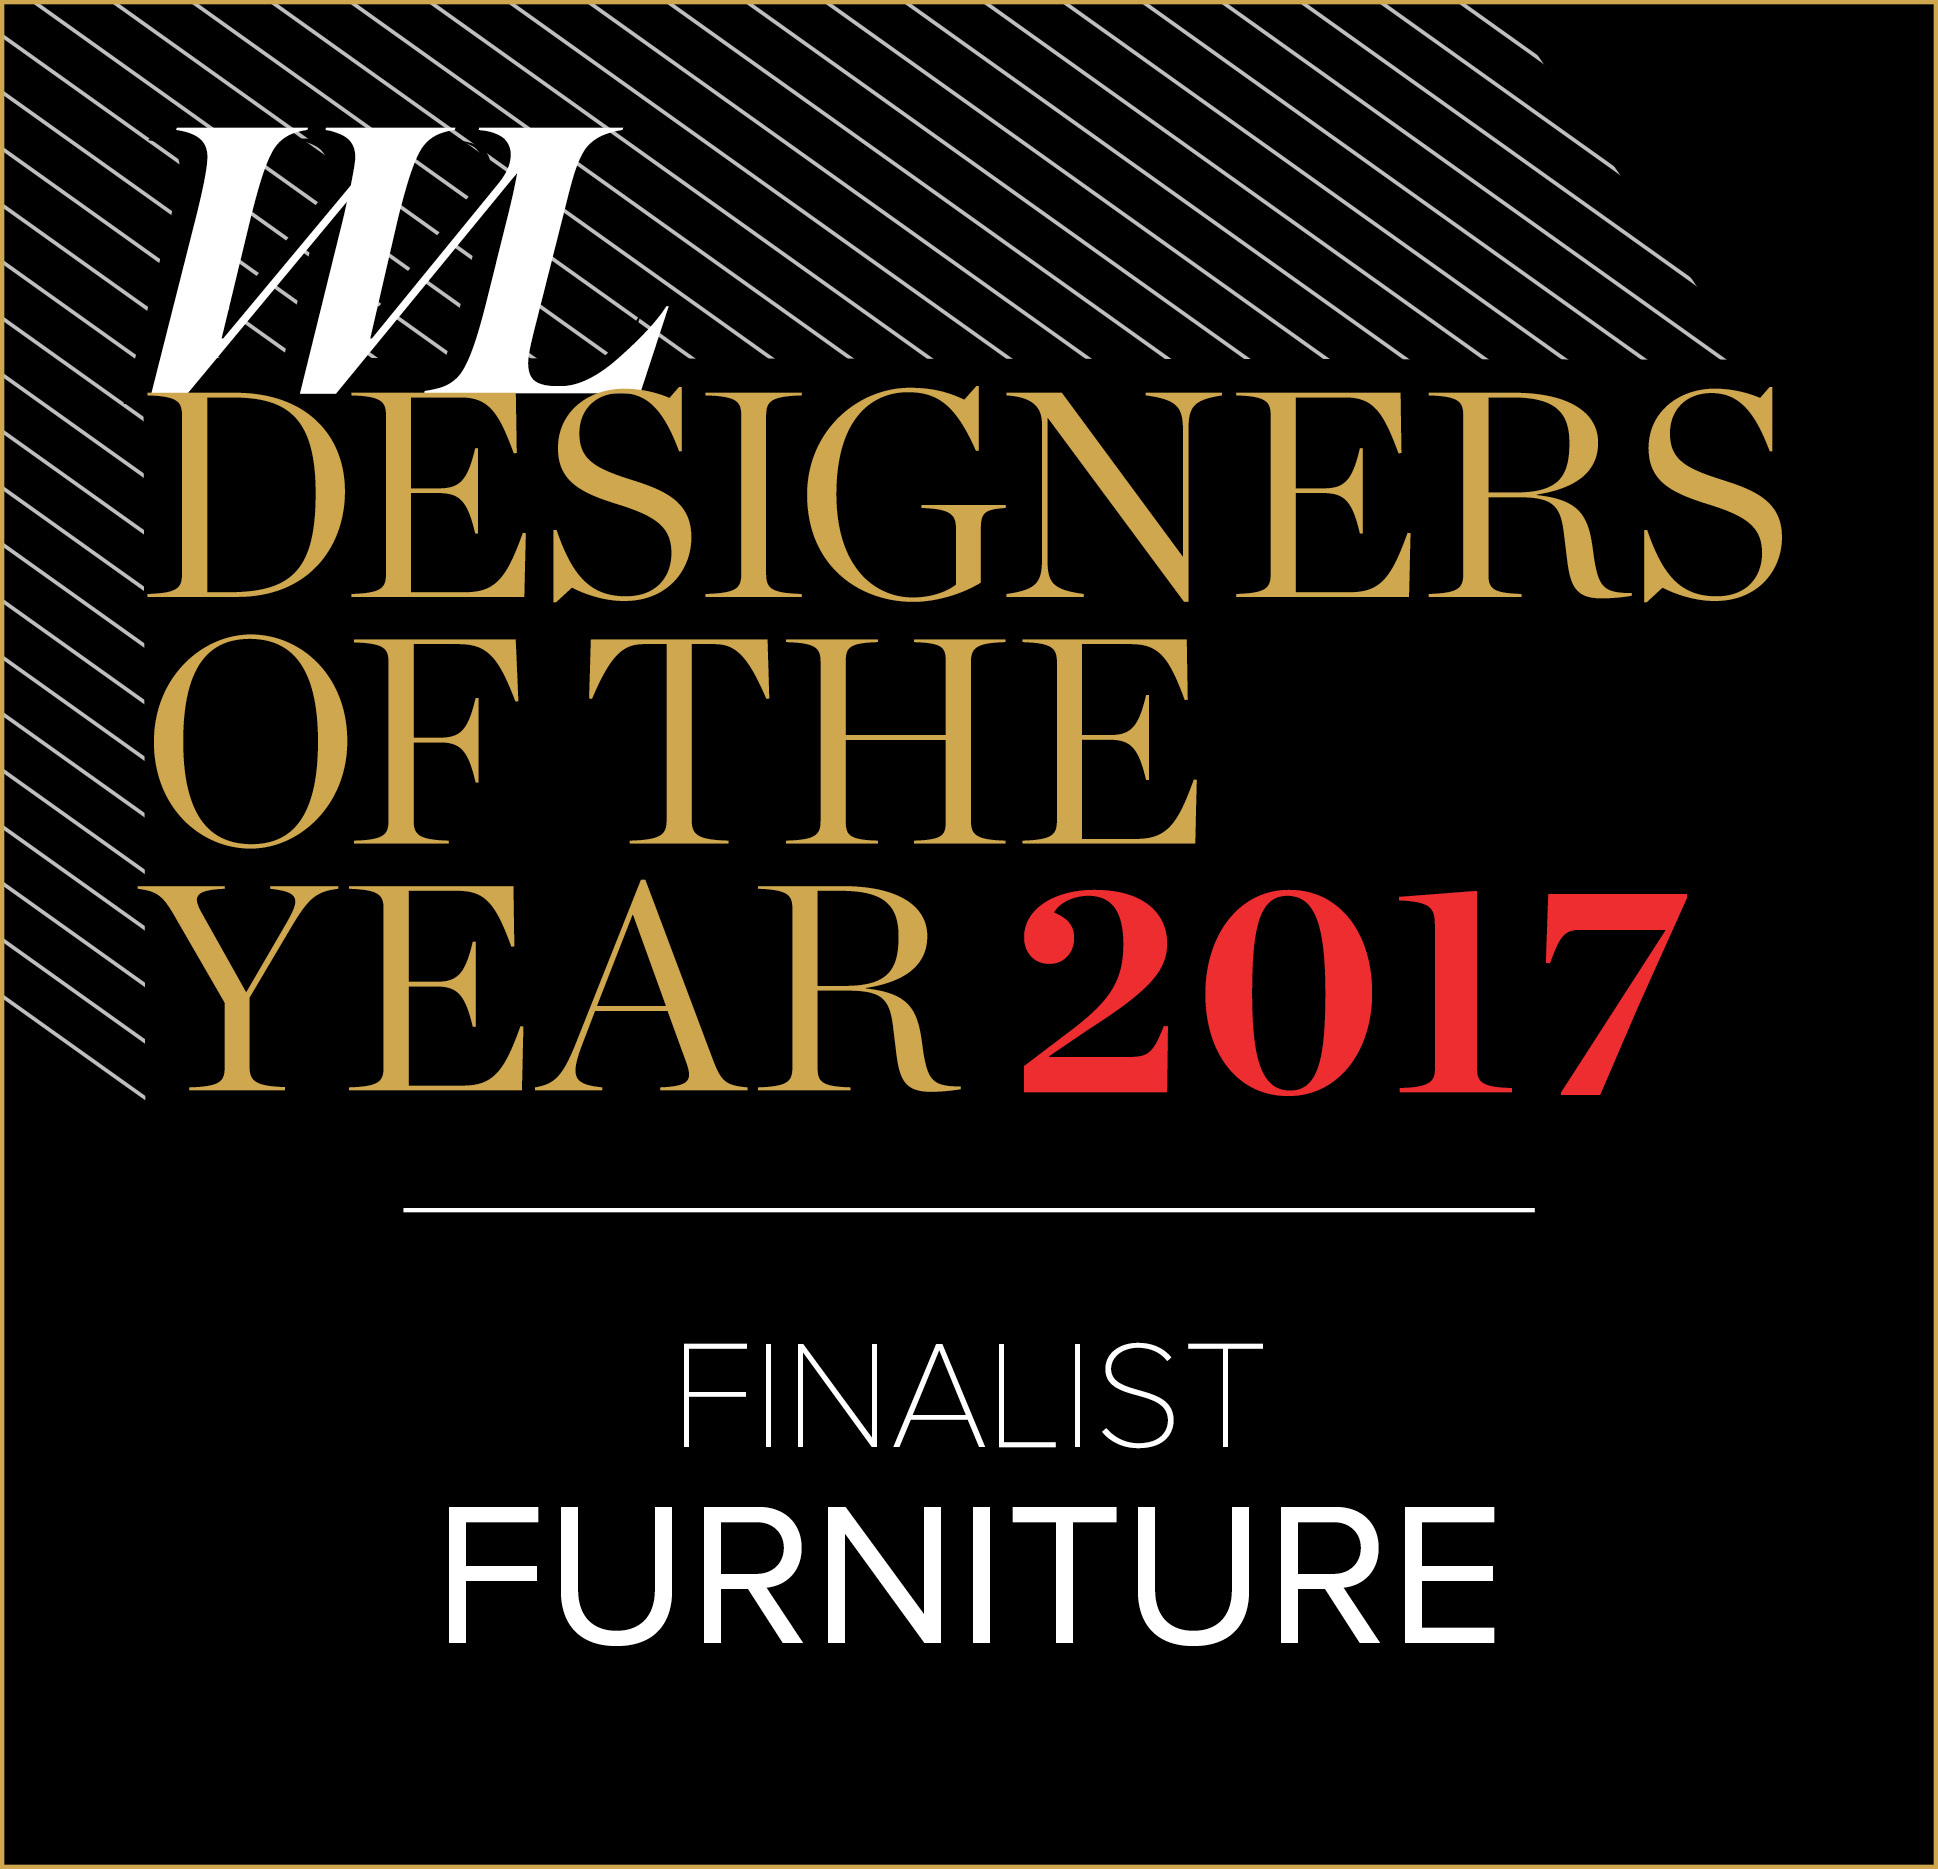 Western Living furniture designer of the year finalist 2017